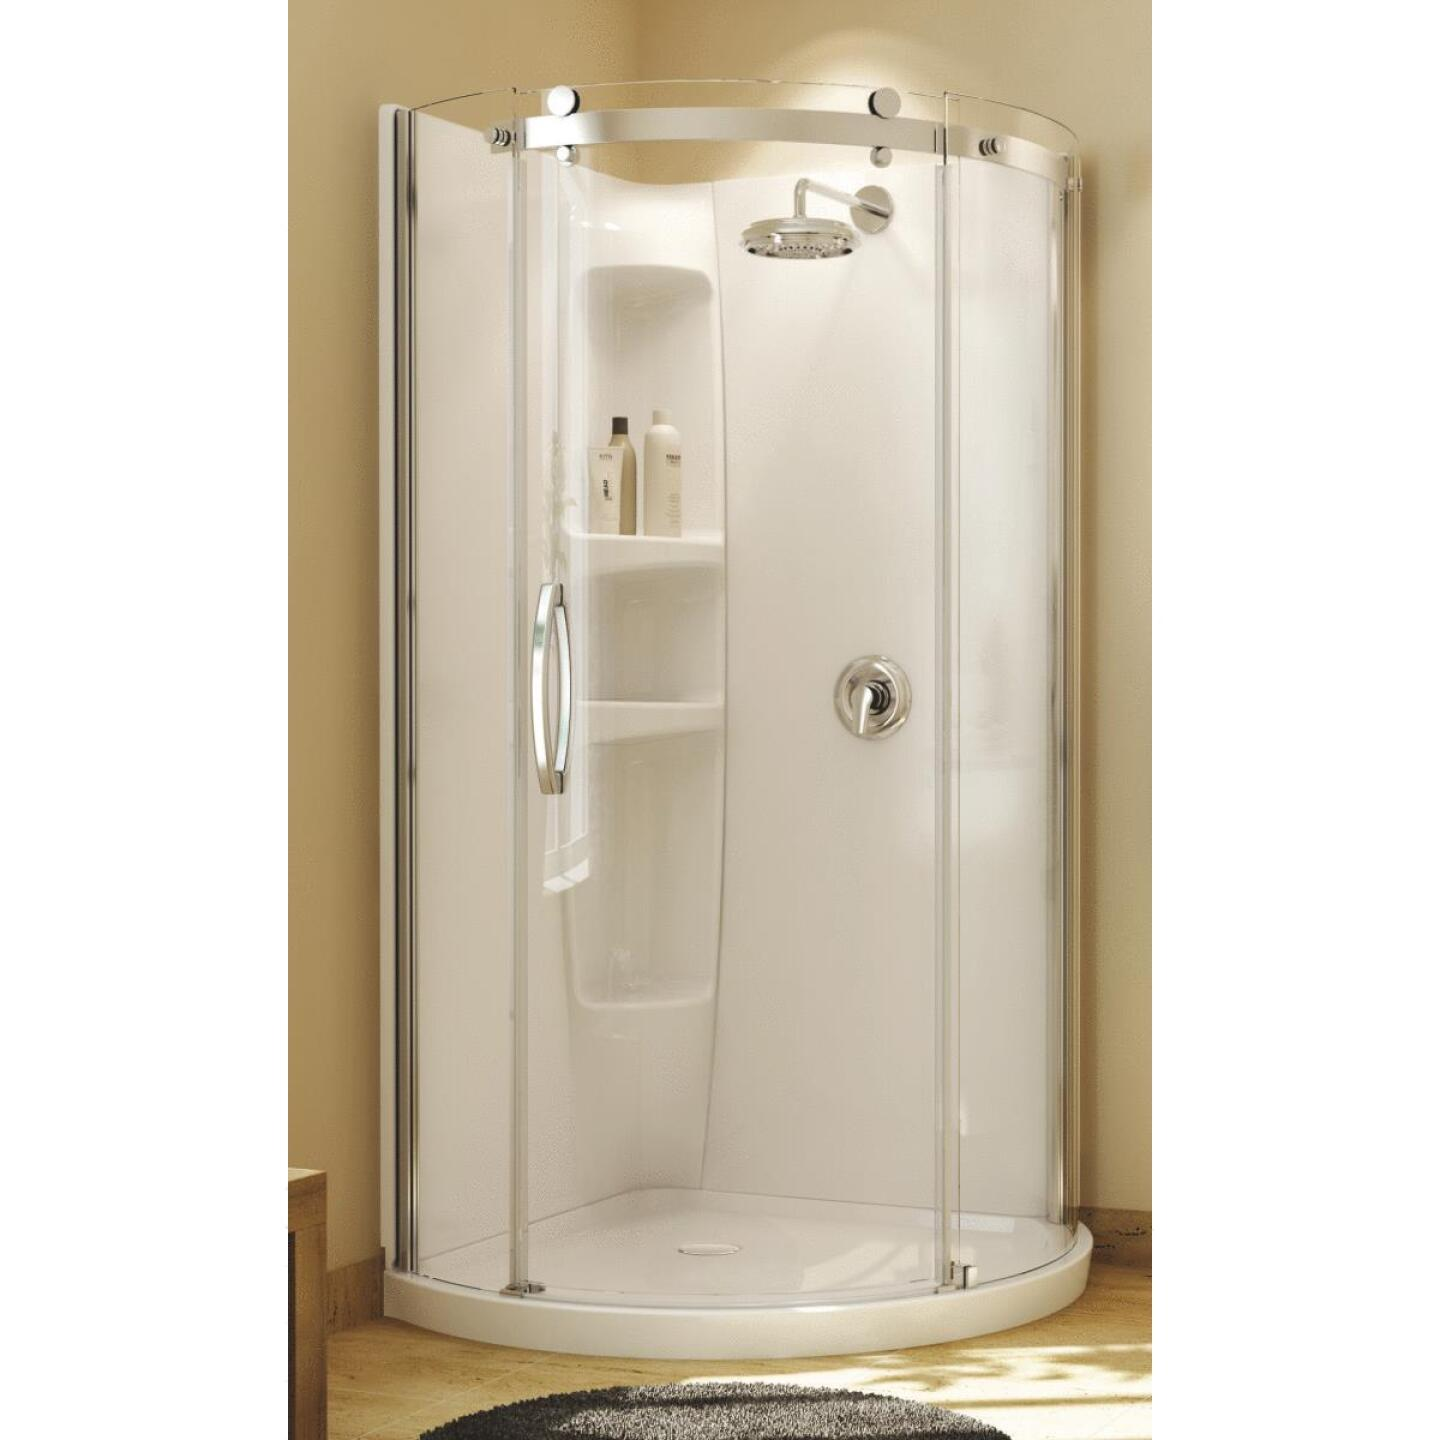 Maax Olympia 22 In. W x 71-3/4 In. H Chrome Framed Clear Glass Corner Shower Door Image 1